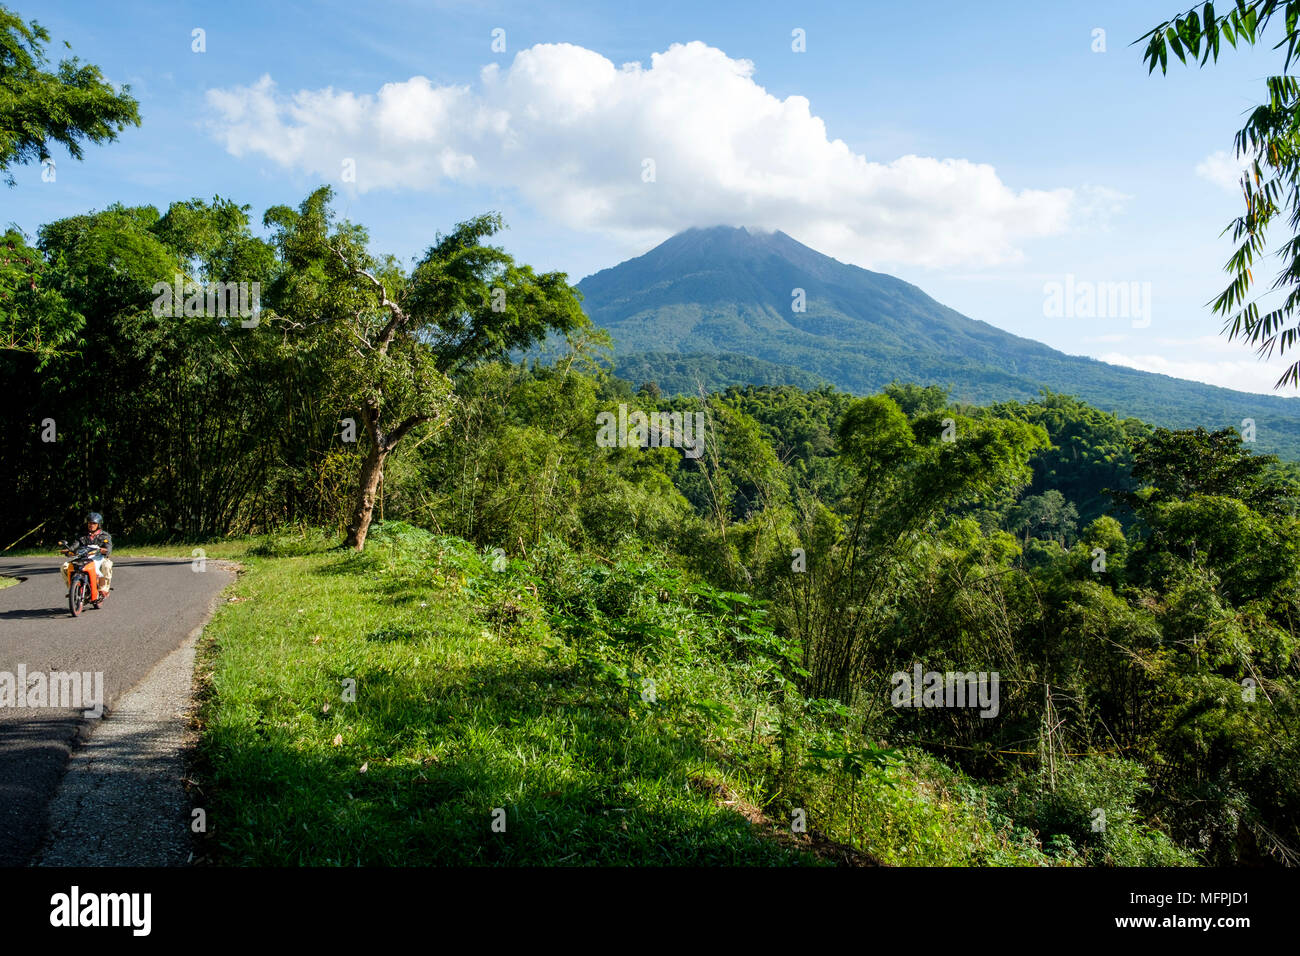 A man rides a motorbike on the road between Nangaroro to Bajawa, with Ebulobo stratovolcano in background, Island of Flores, Indonesia. - Stock Image